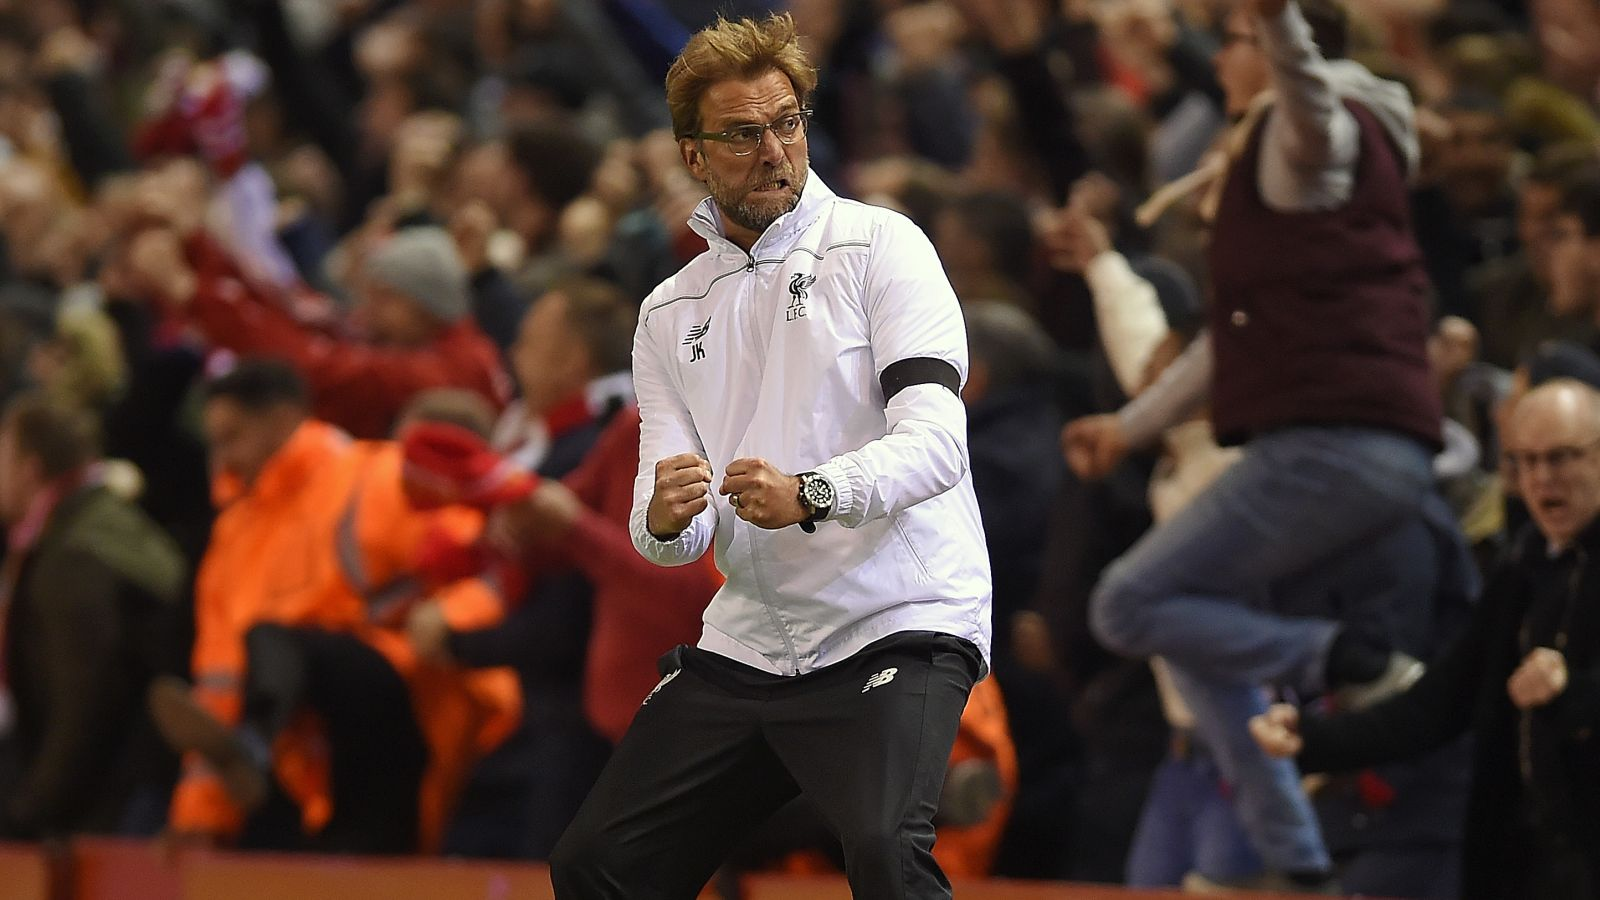 Klopp channels Terminator as Liverpool players read famous movie quotes